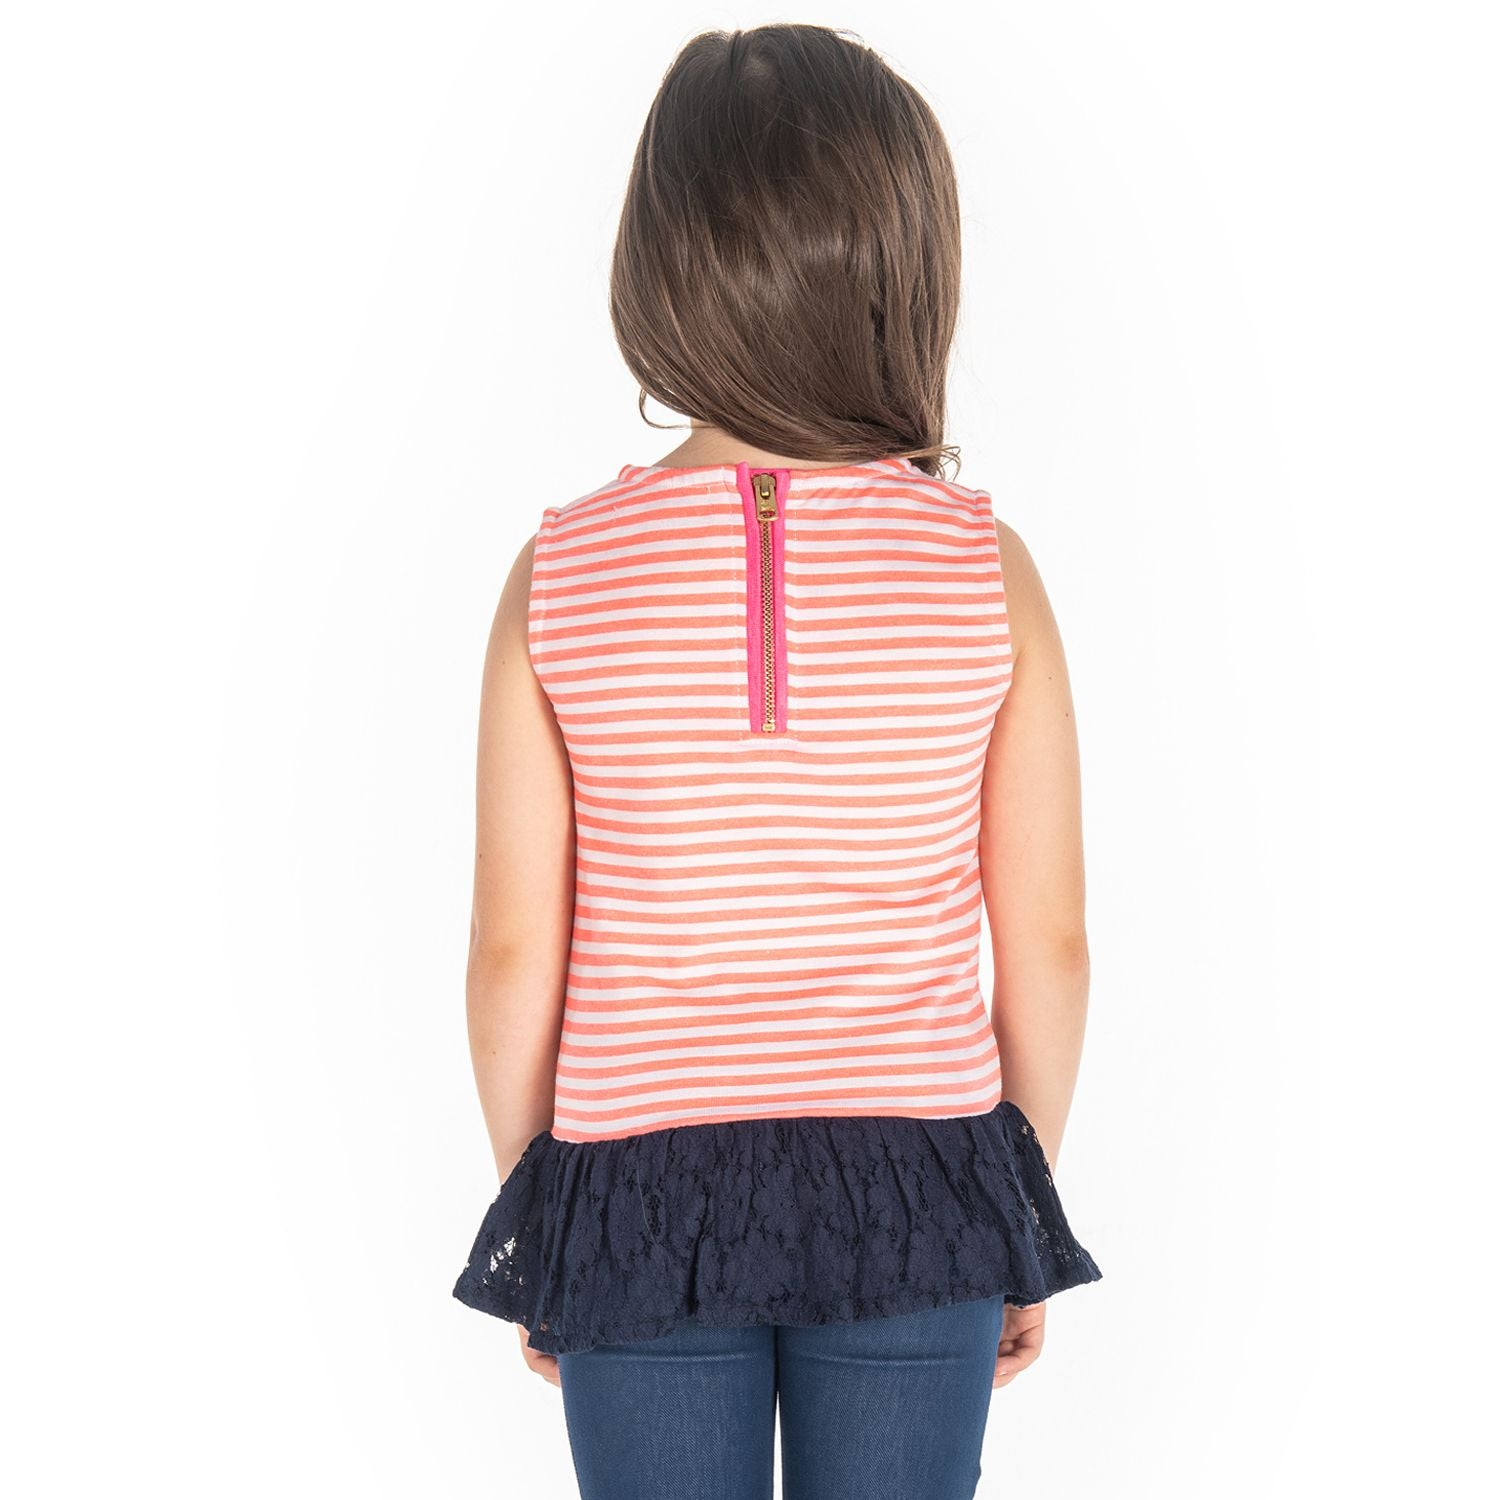 Roller Peplum Top for Girls